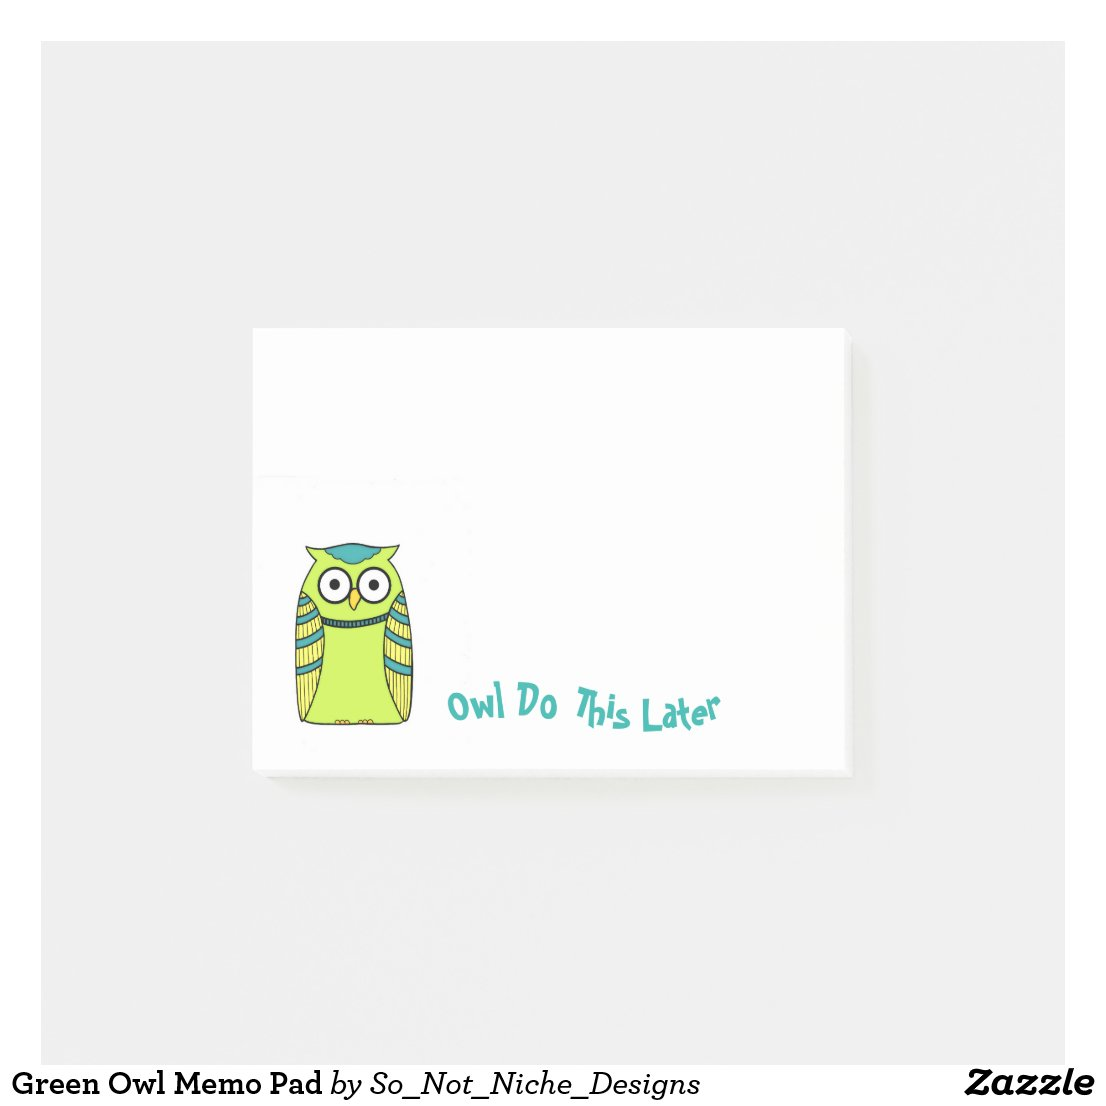 Green Owl Memo Pad Post-it Notes